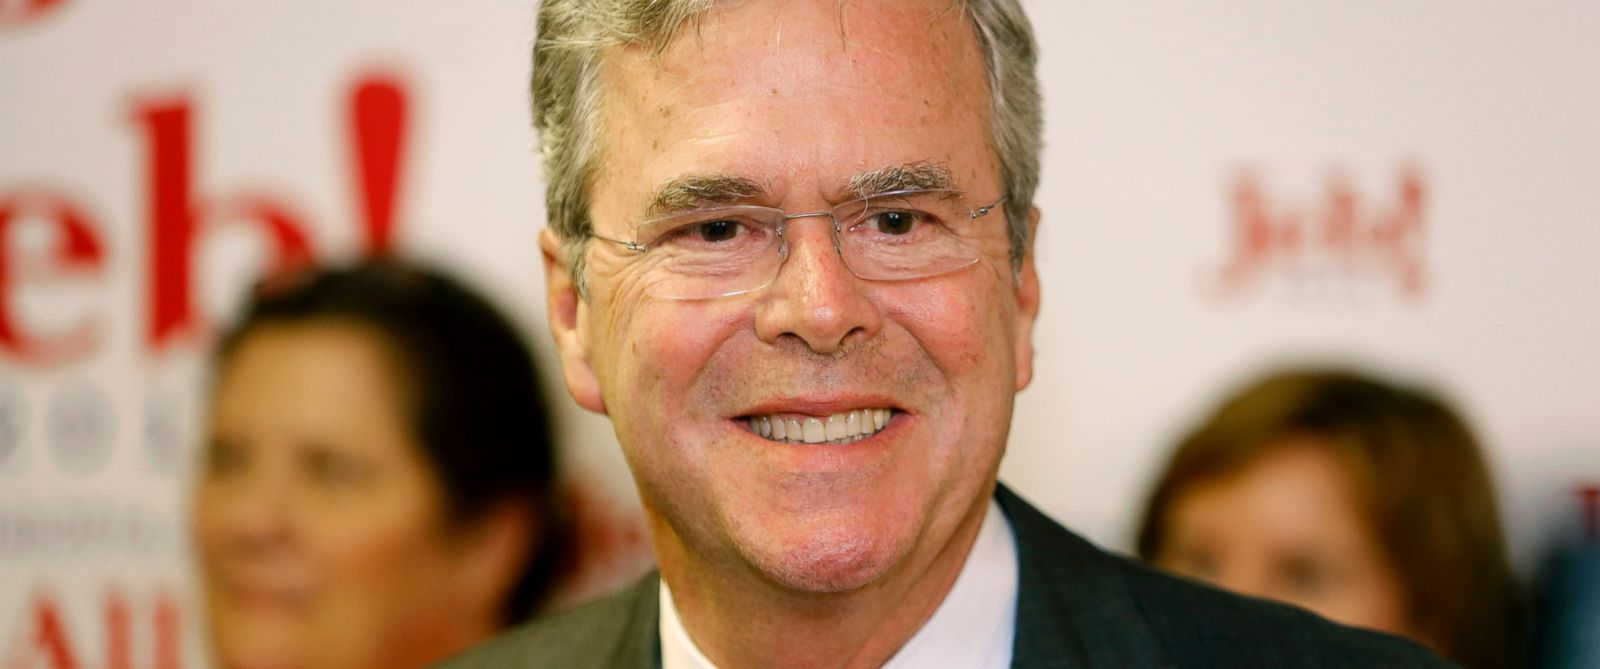 PHOTO: Republican presidential candidate former Florida Gov. Jeb Bush smiles during a press conference at the East Cooper Republican Womens Club Annual Shrimp Dinner at Alhambra Hall in Mt. Pleasant, S.C., Sept. 24, 2015.